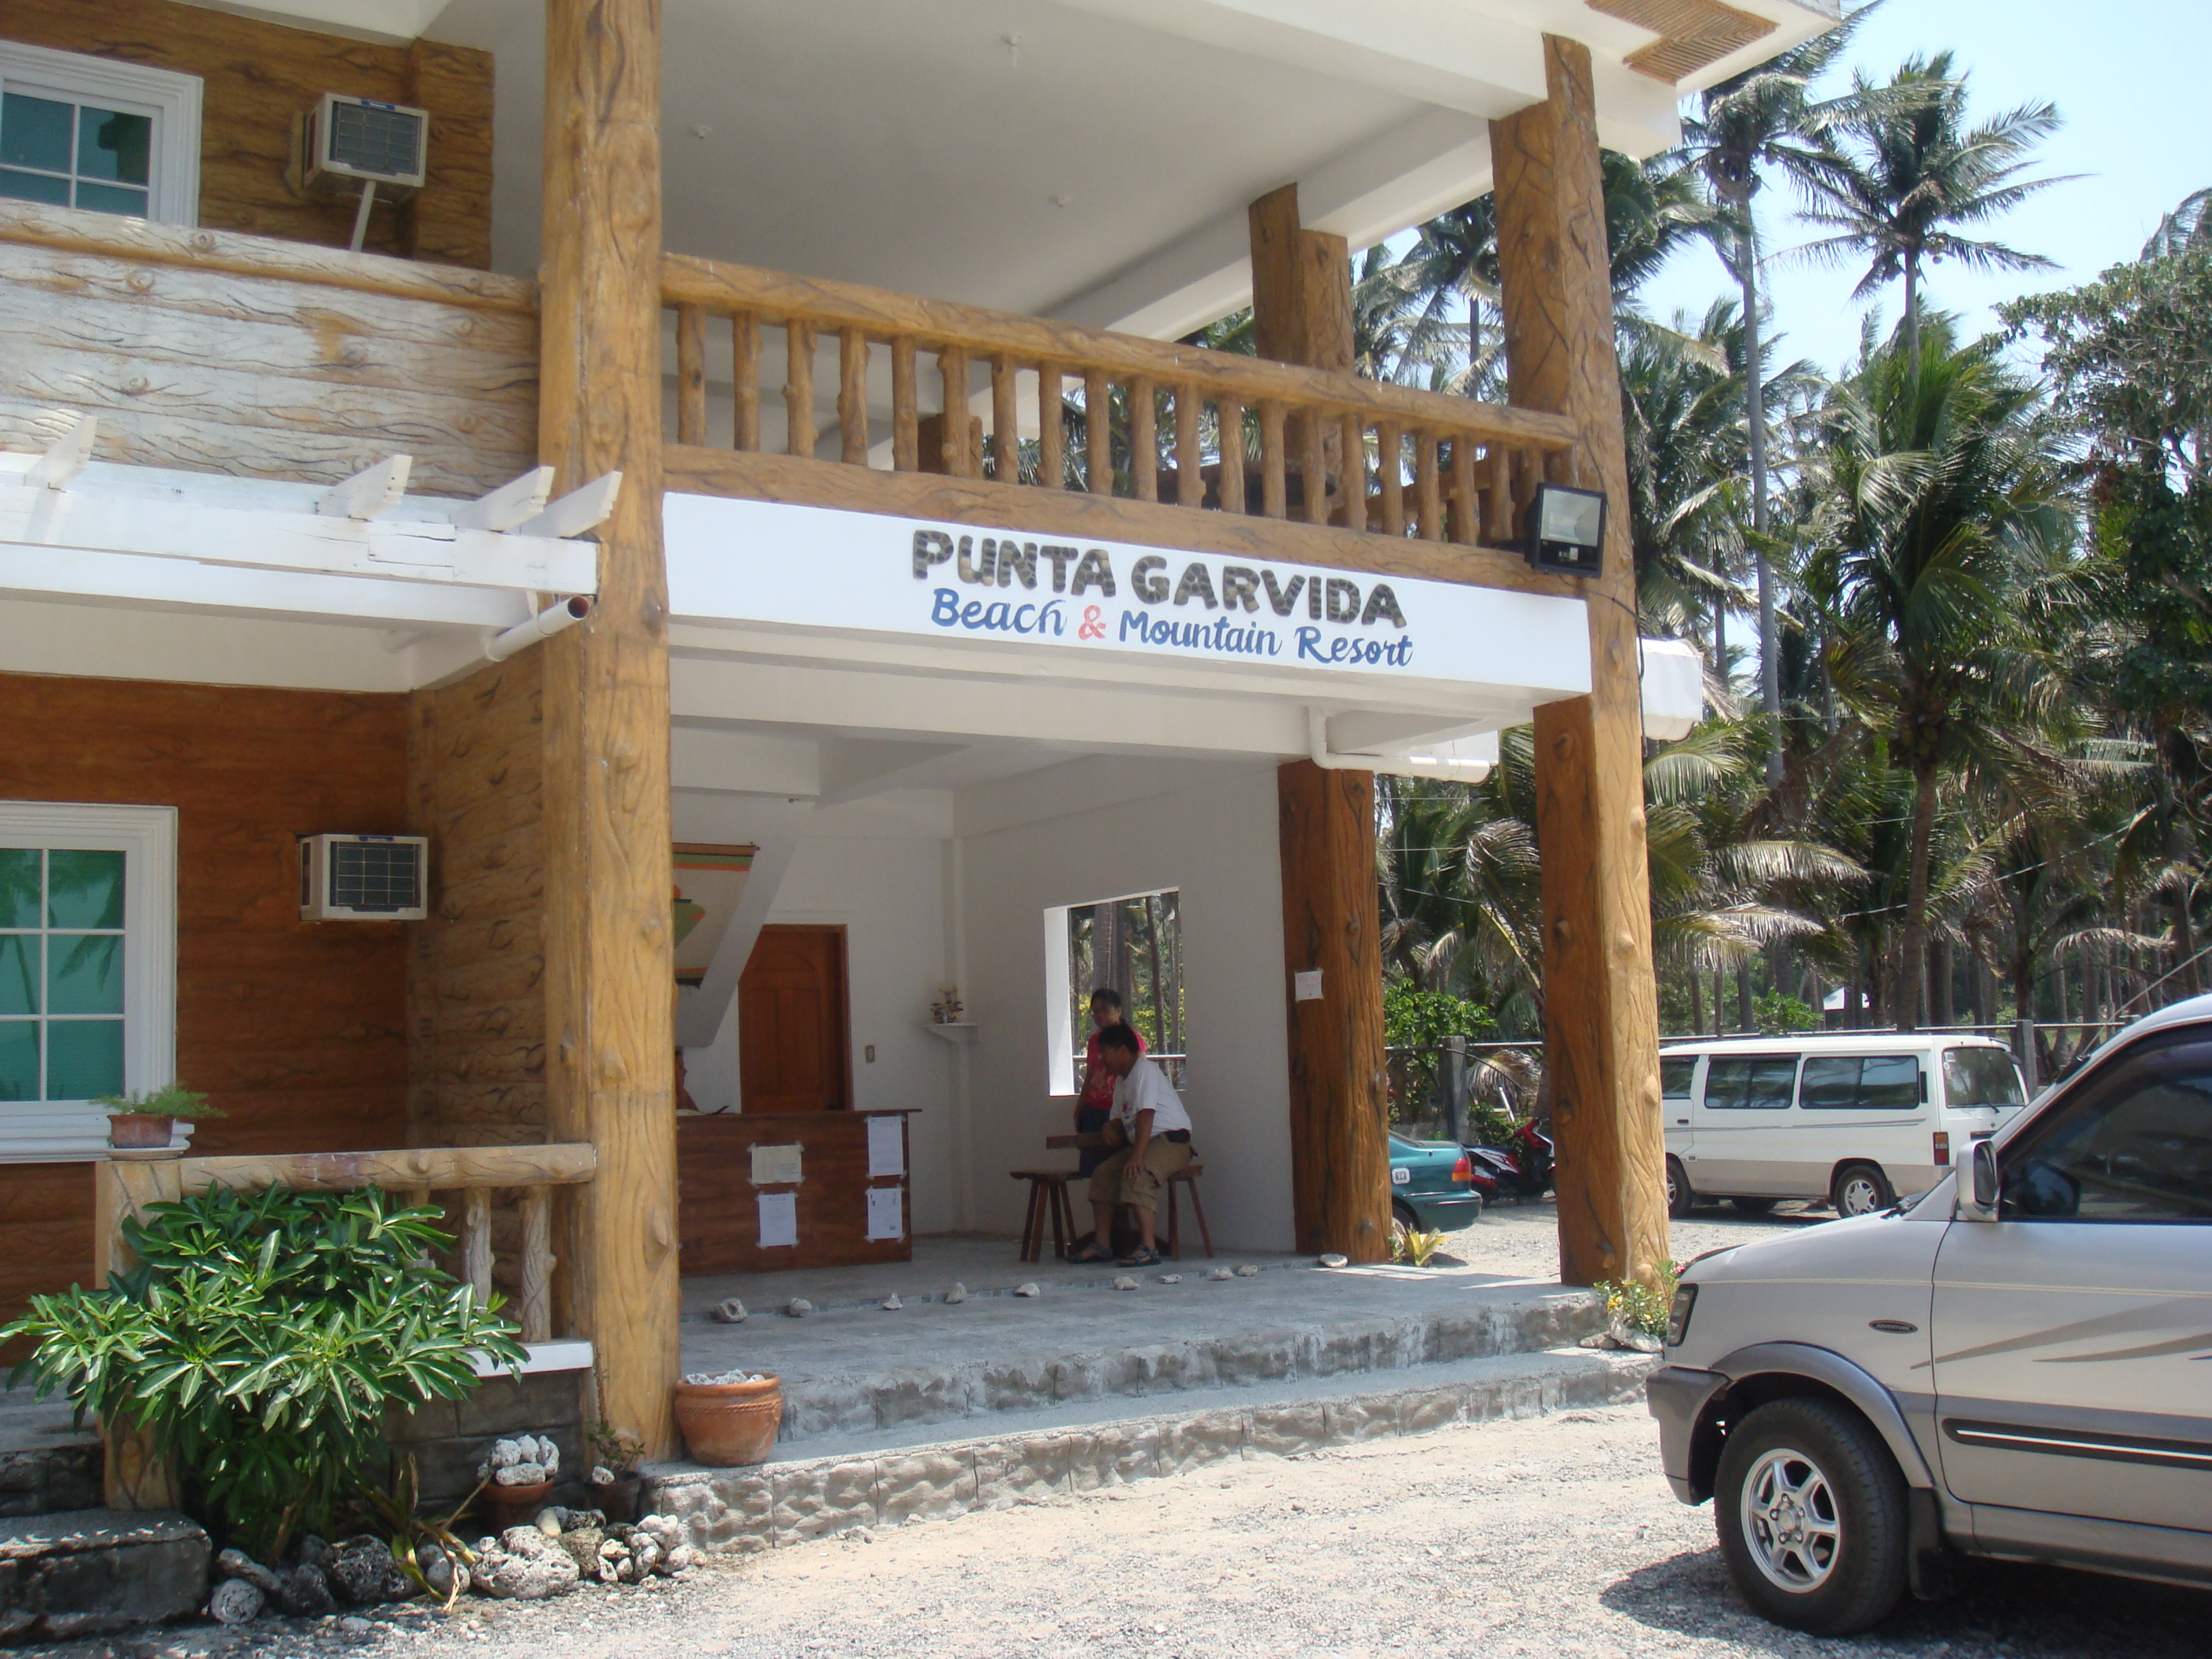 Punta Garvida Beach Resort